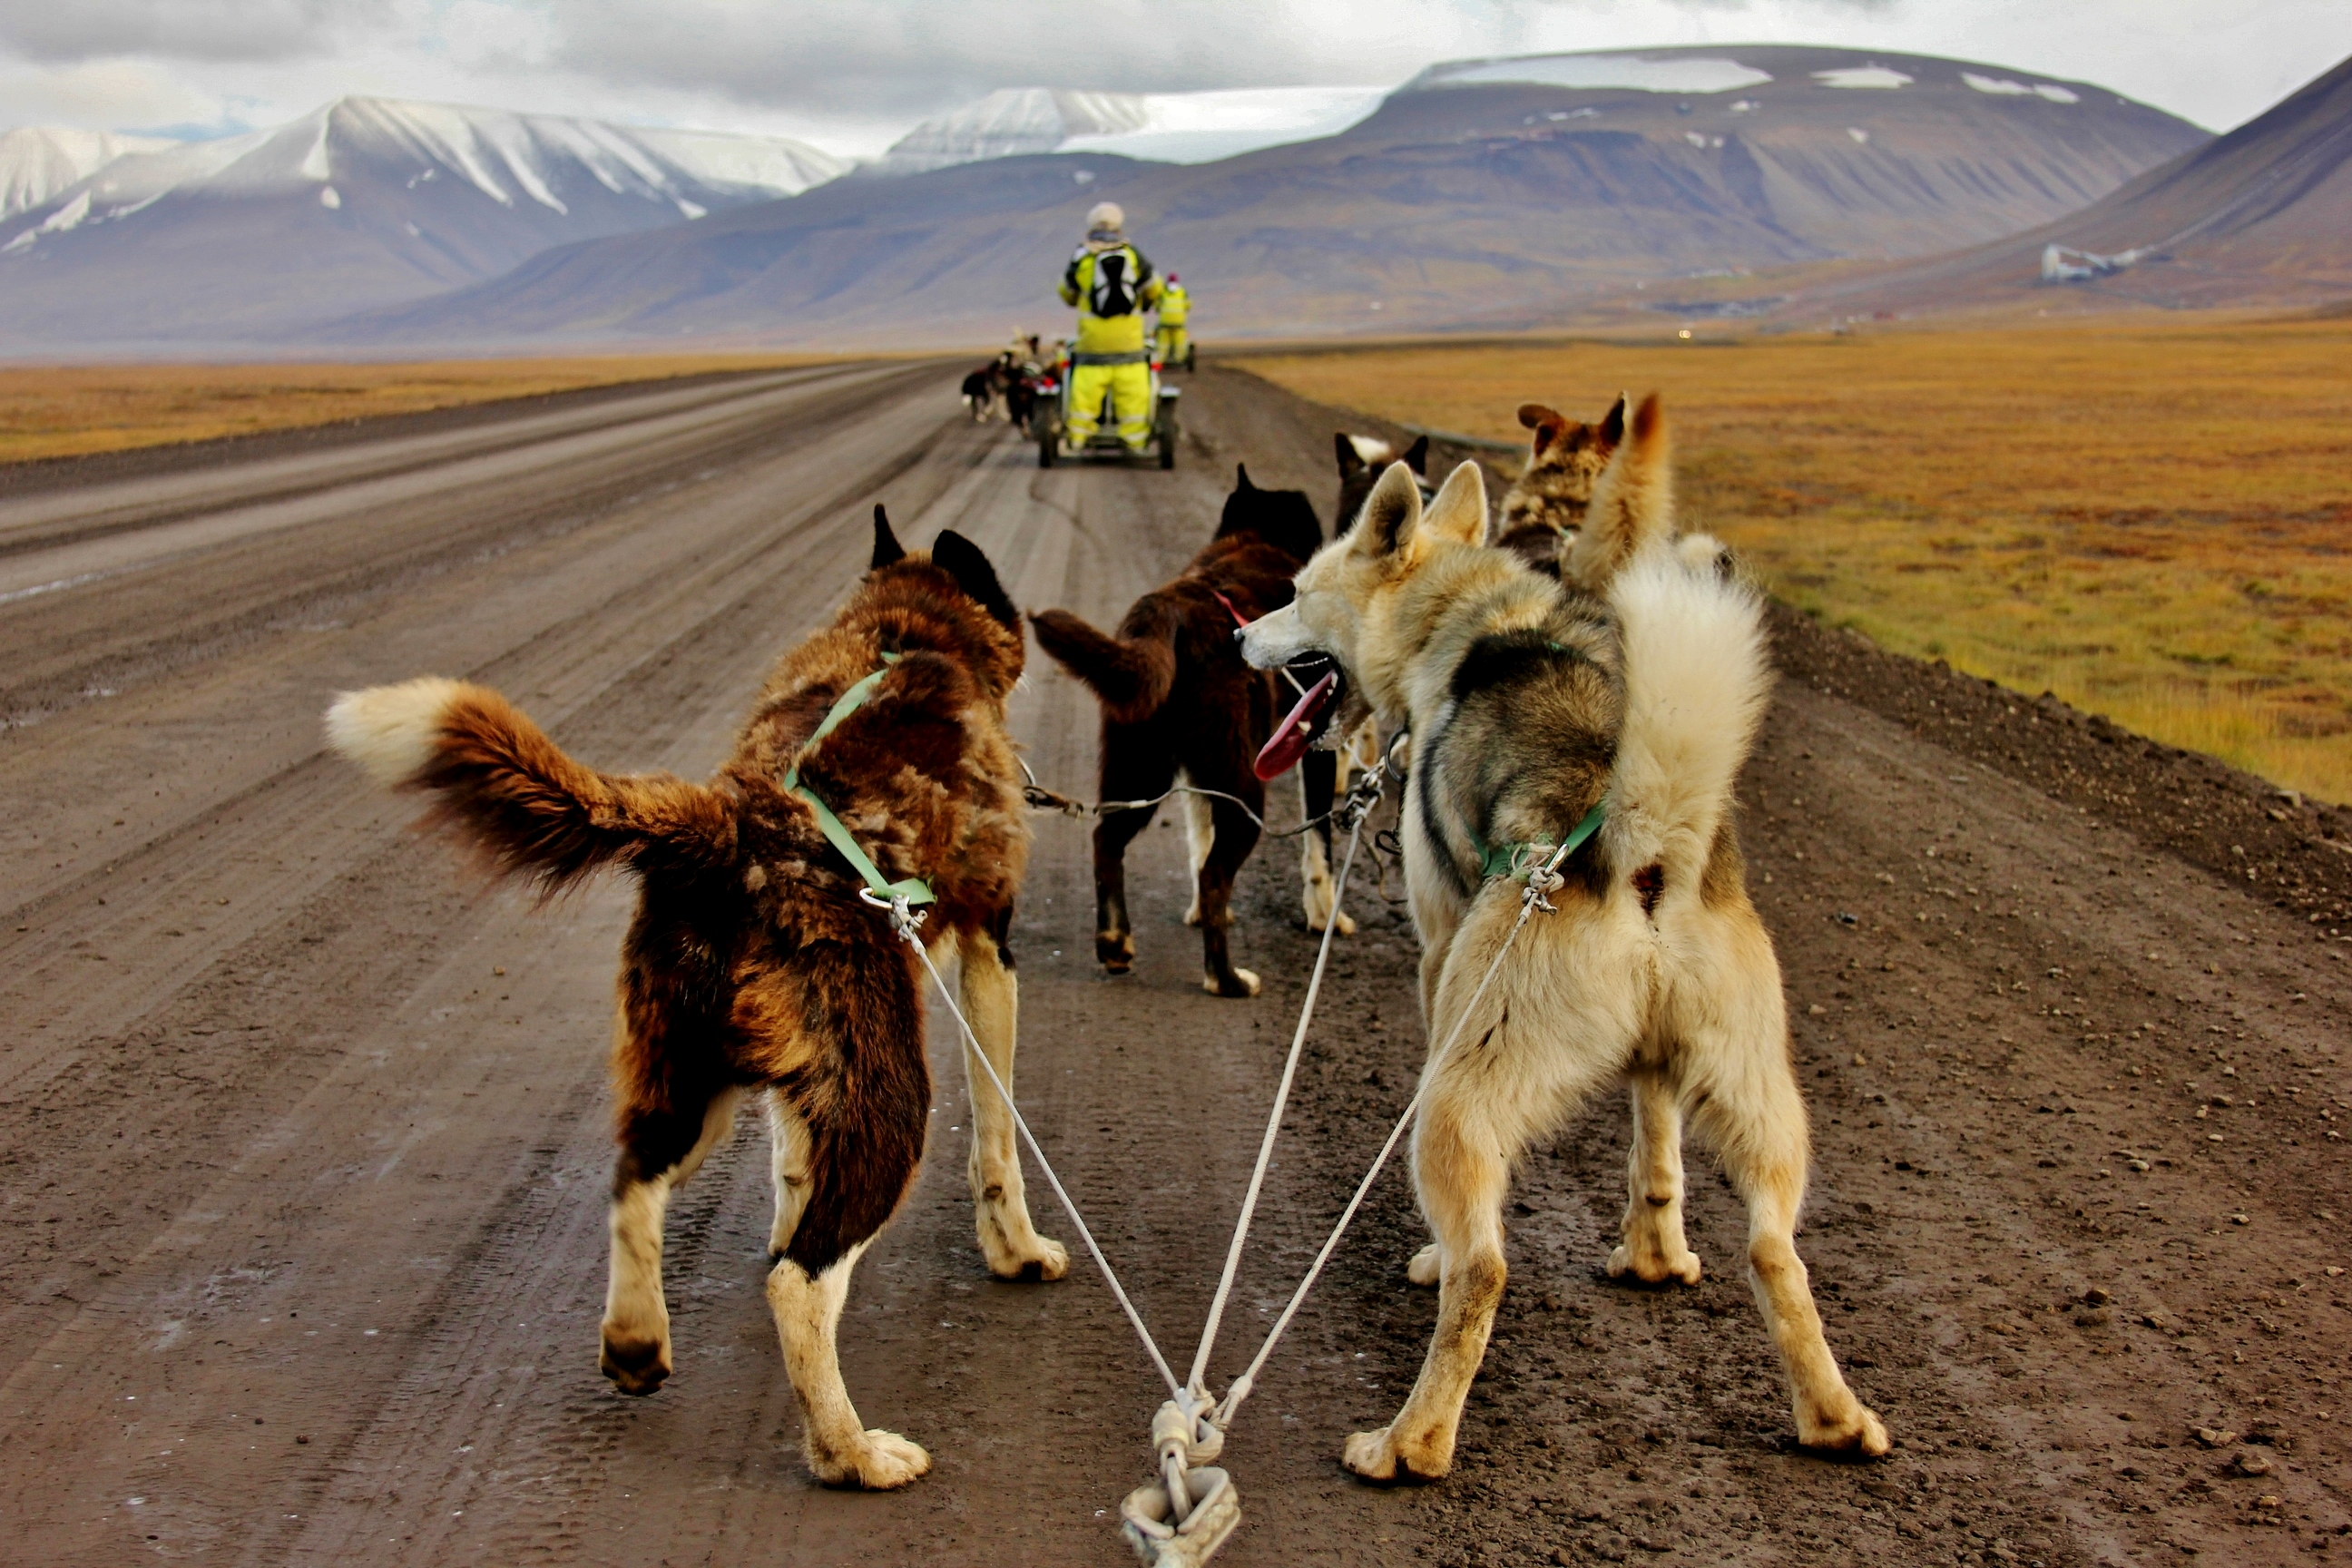 Husky dog sledding in Norway (The Culture Map)